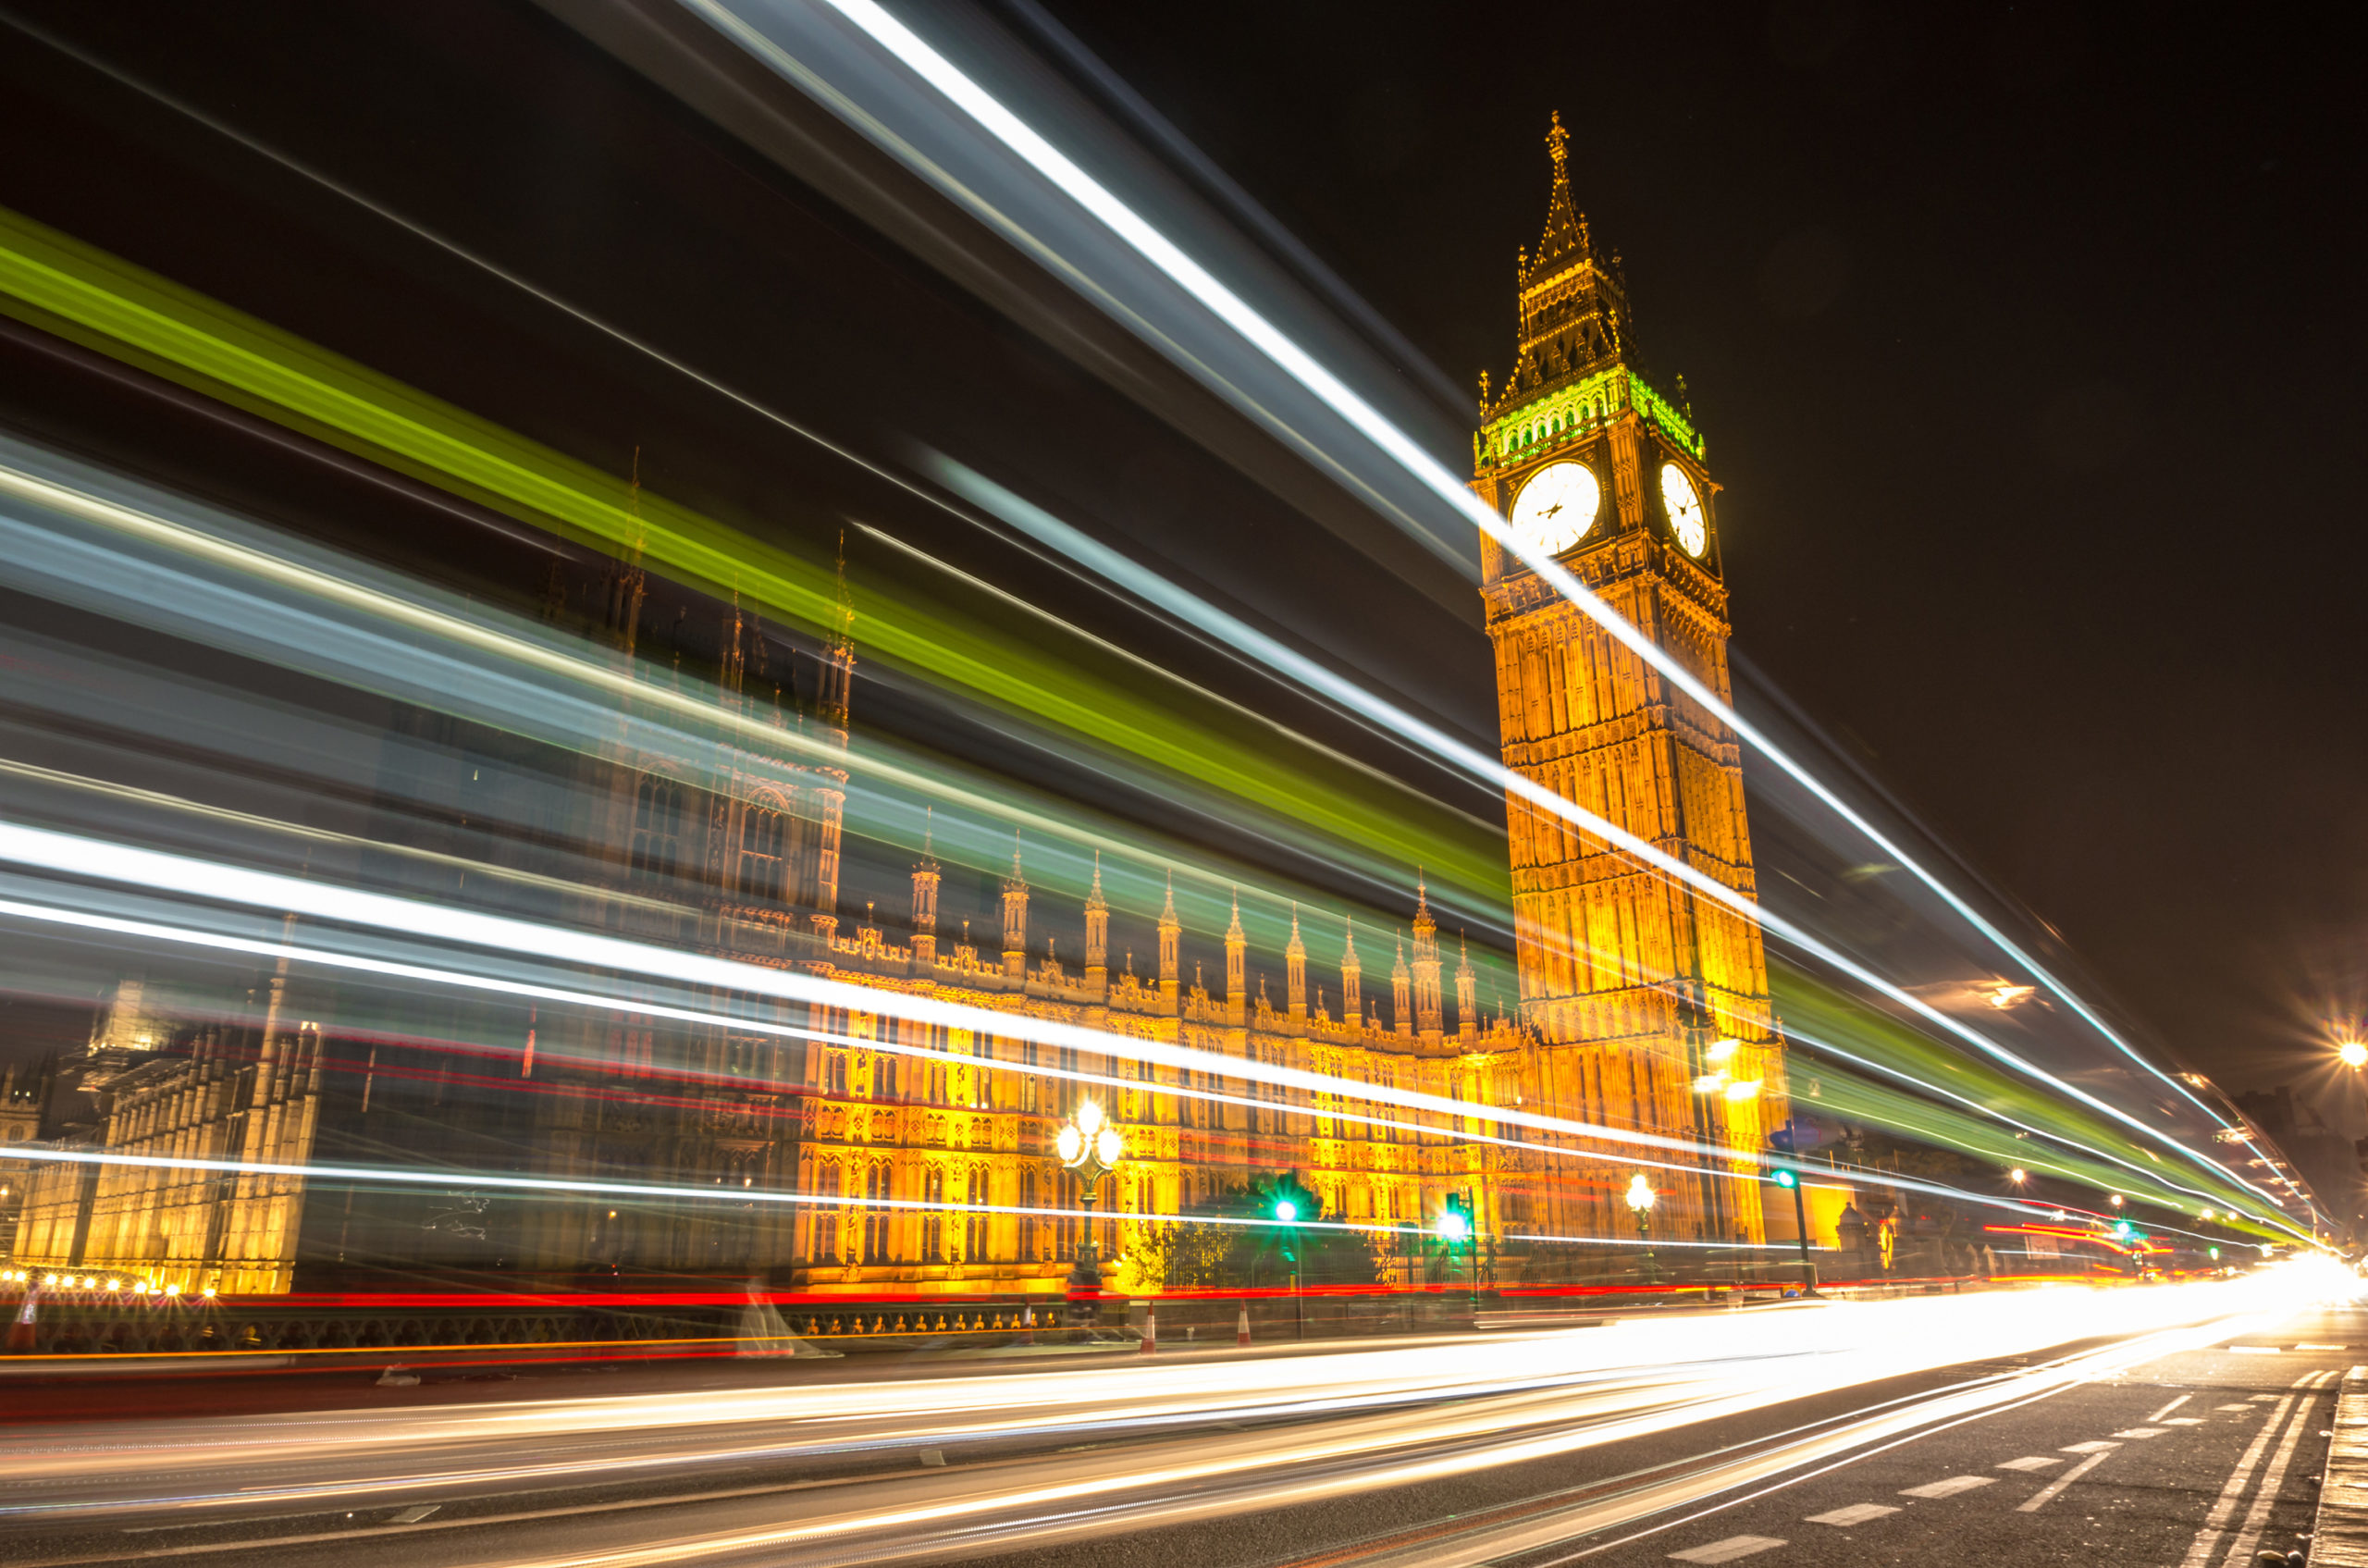 A picture of Big Ben at night